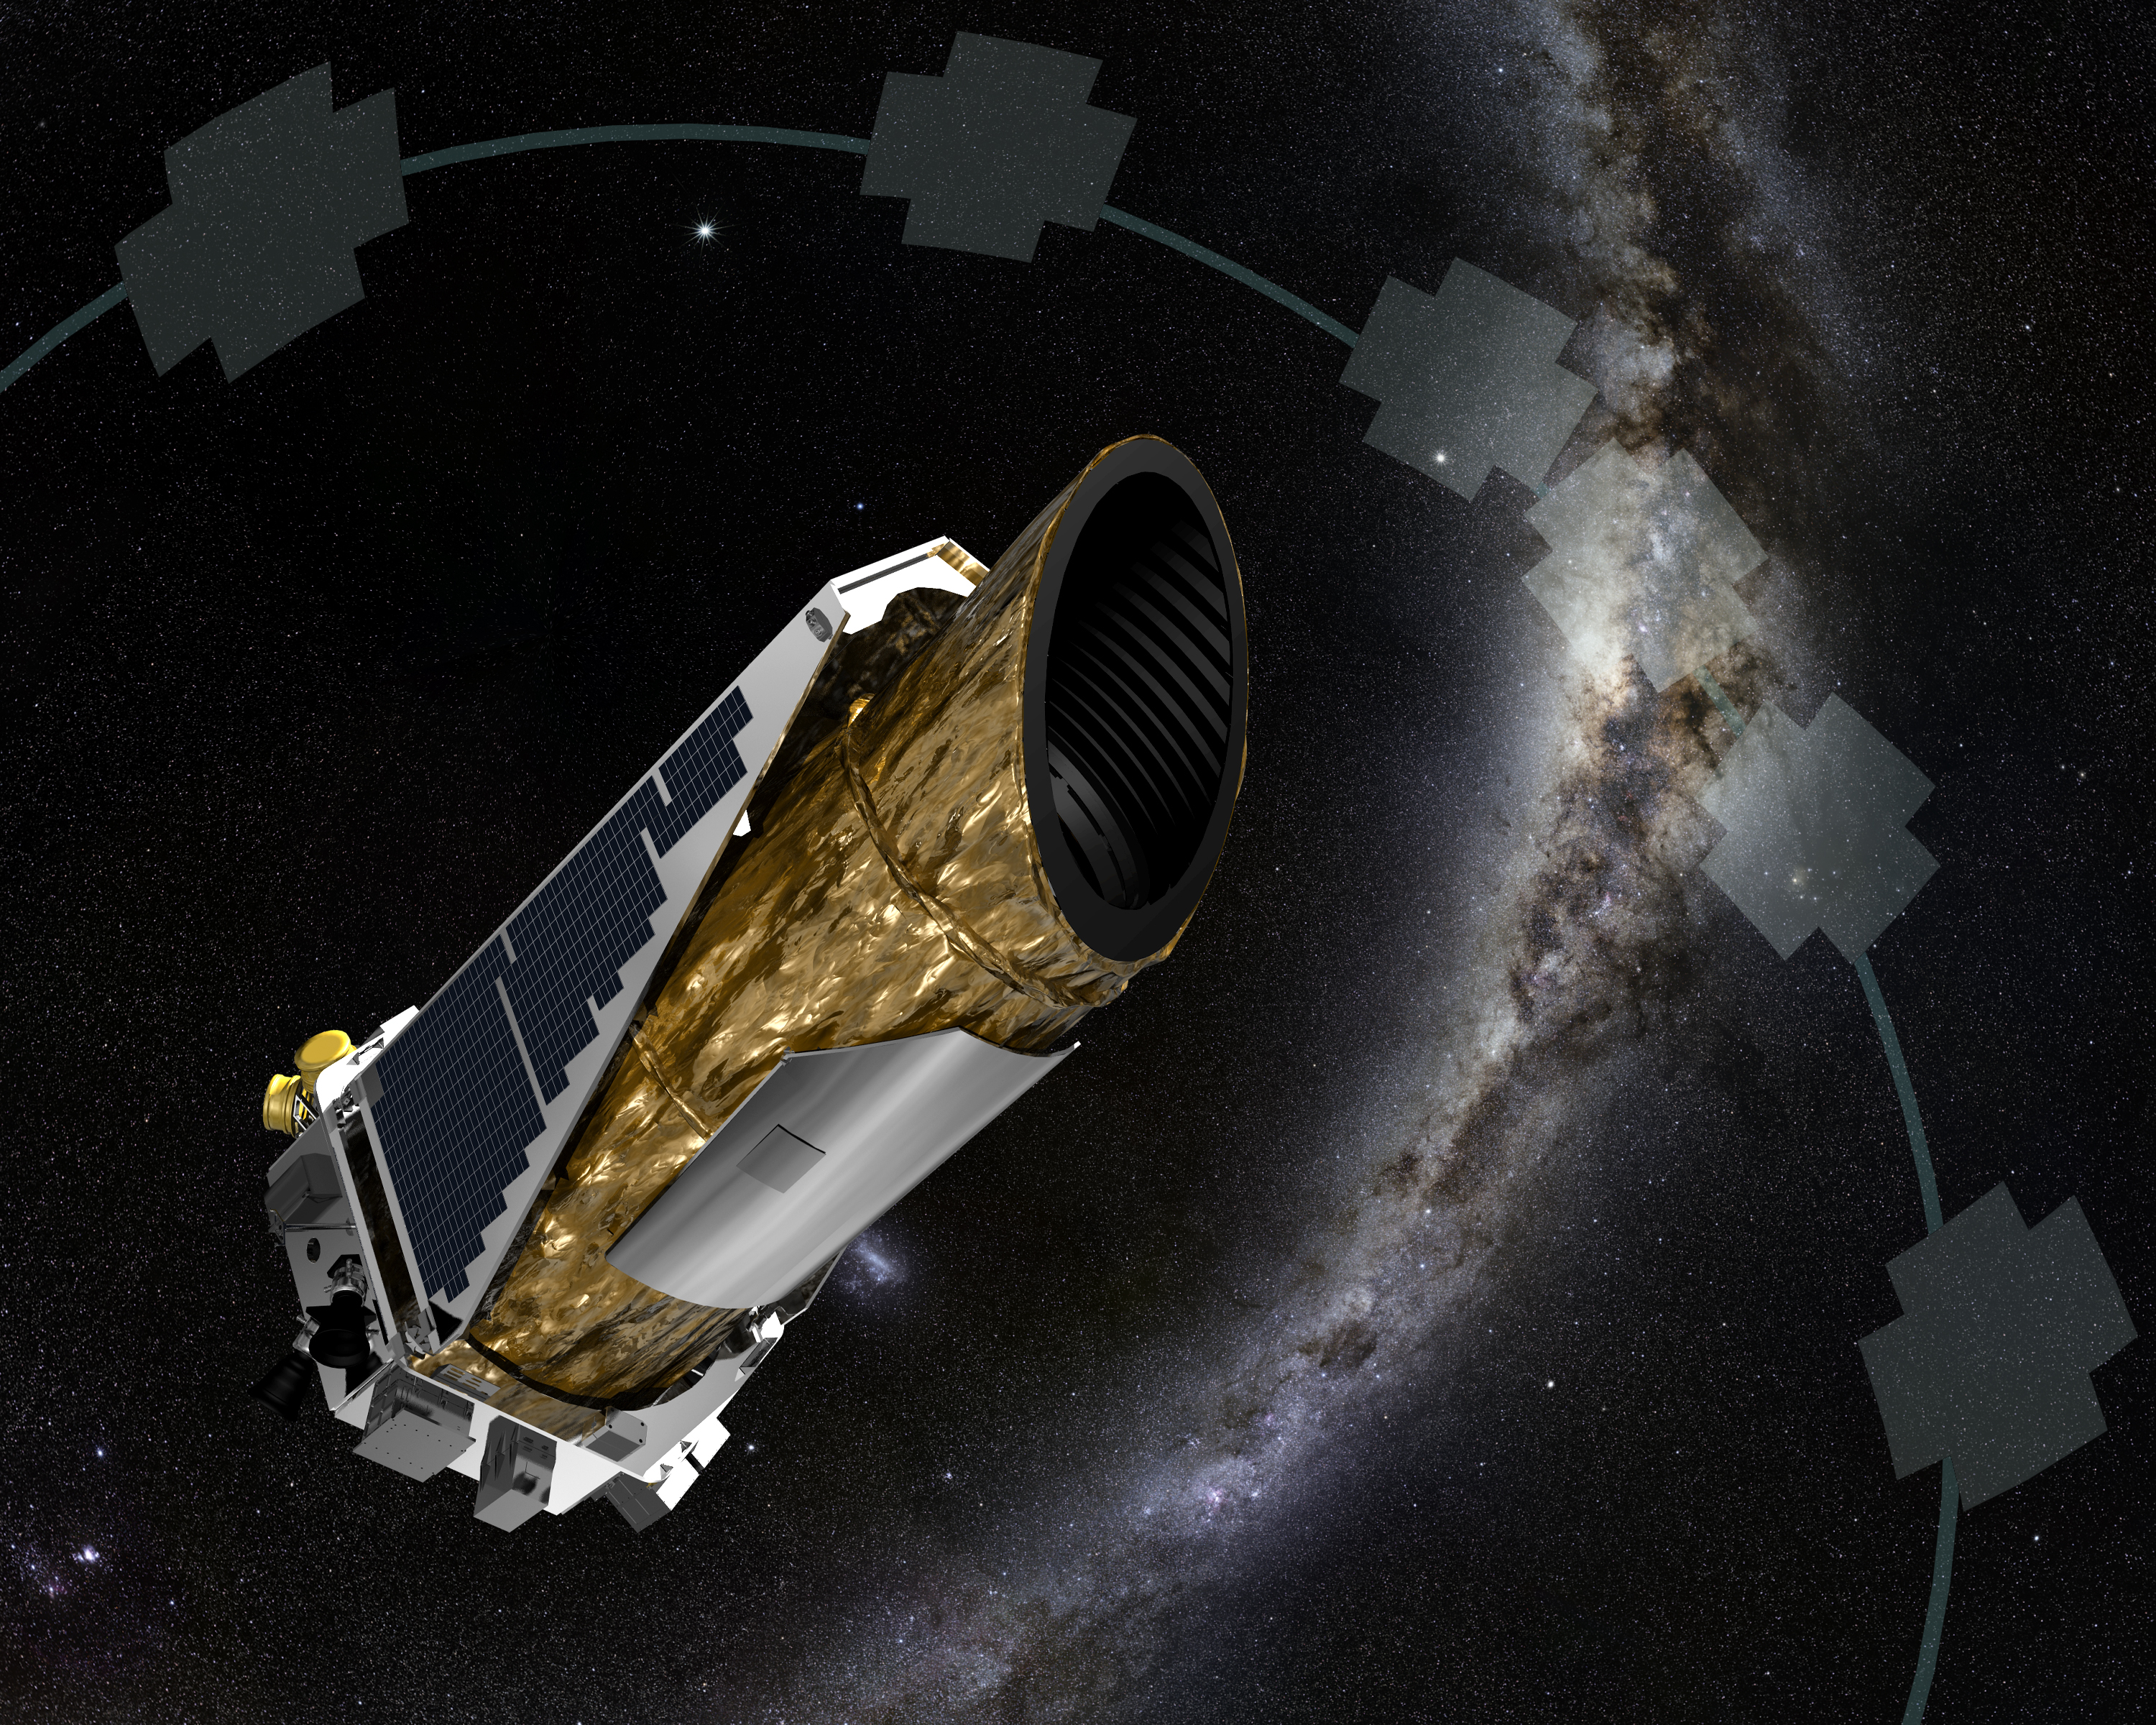 Best way to get in to NASA extra-planetary research team?